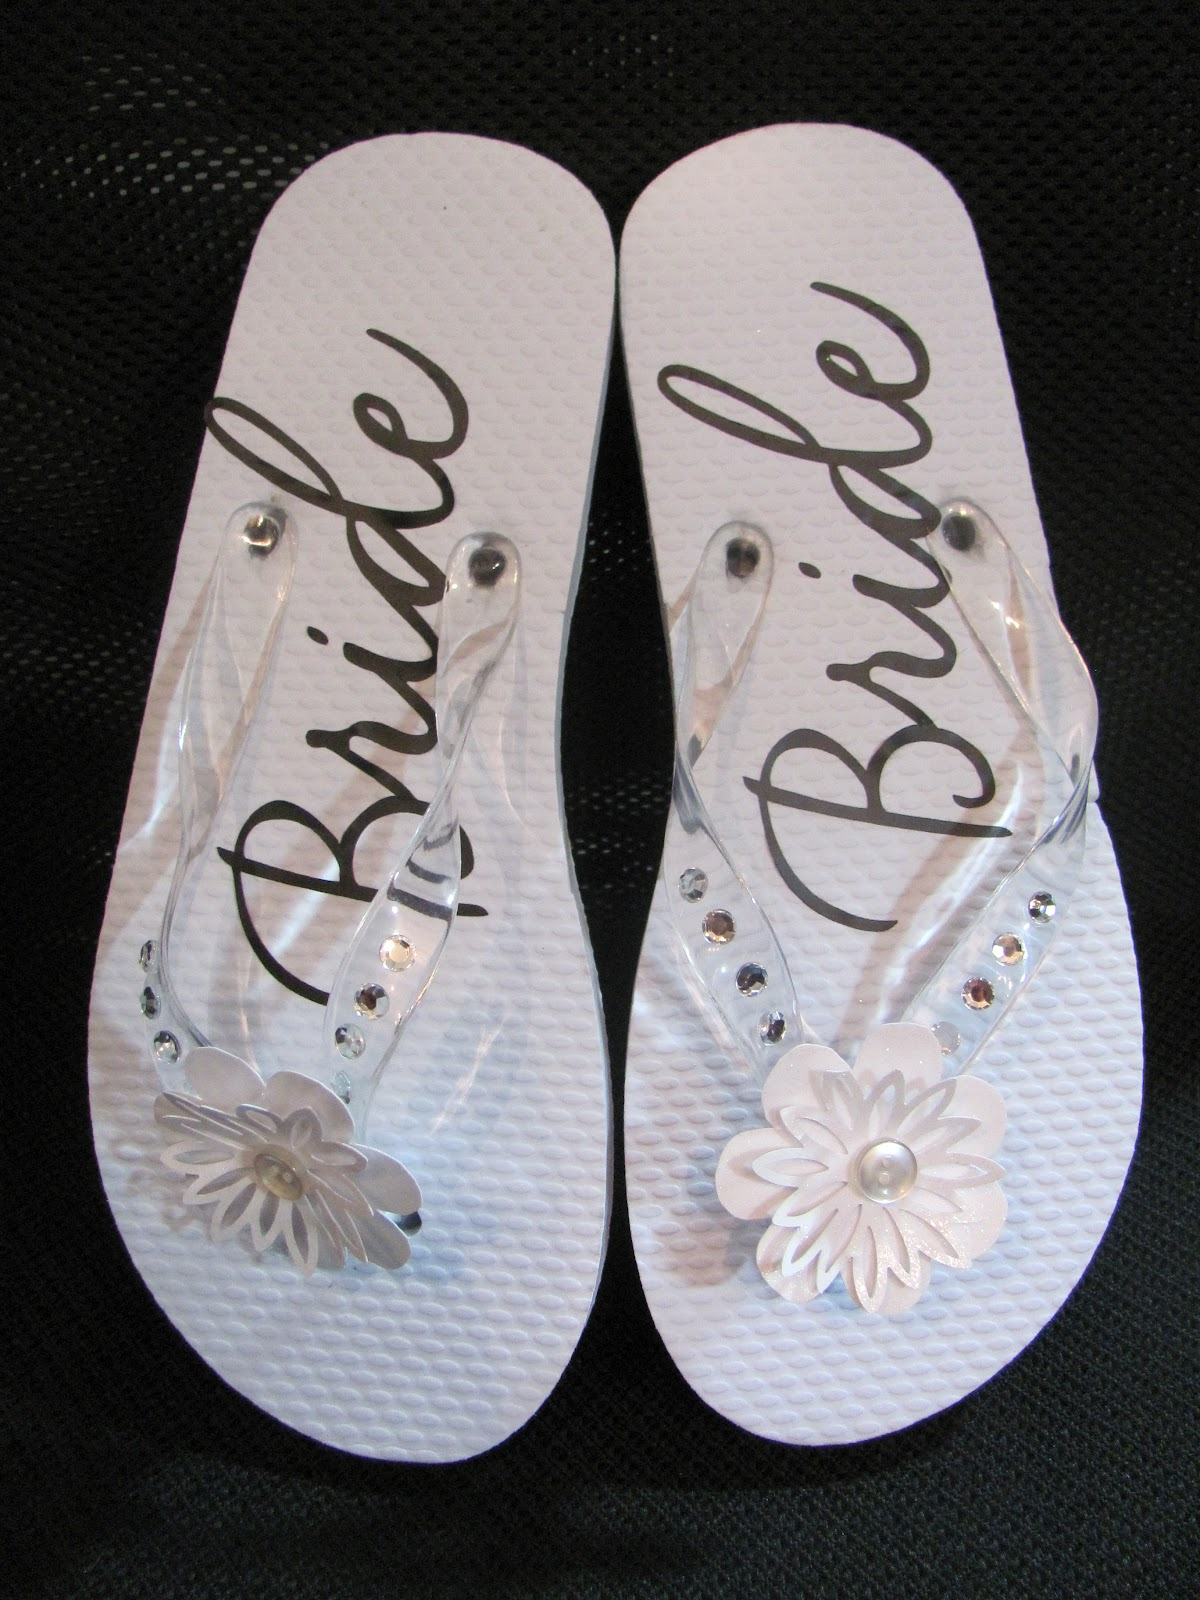 Yogimemories wedding flip flops